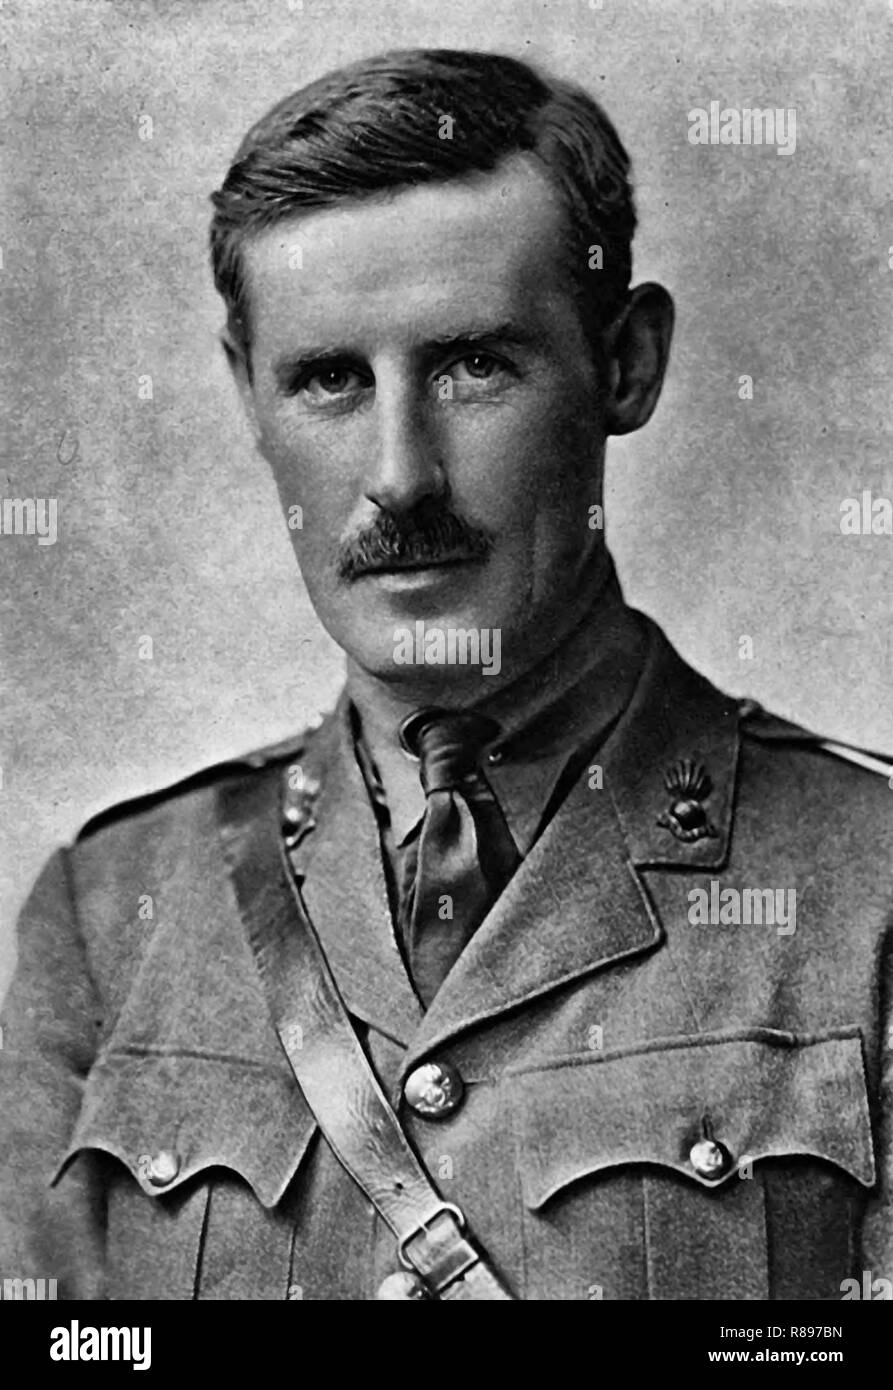 Herbert Henry Asquith, 1st Earl of Oxford and Asquith, KG, PC, KC, FRS (12 September 1852 – 15 February 1928), generally known as H. H. Asquith, was a British statesman and Liberal Party politician who served as Prime Minister of the United Kingdom from 1908 to 1916. He was the last prime minister to lead a majority Liberal government, circa 1918 - Stock Image